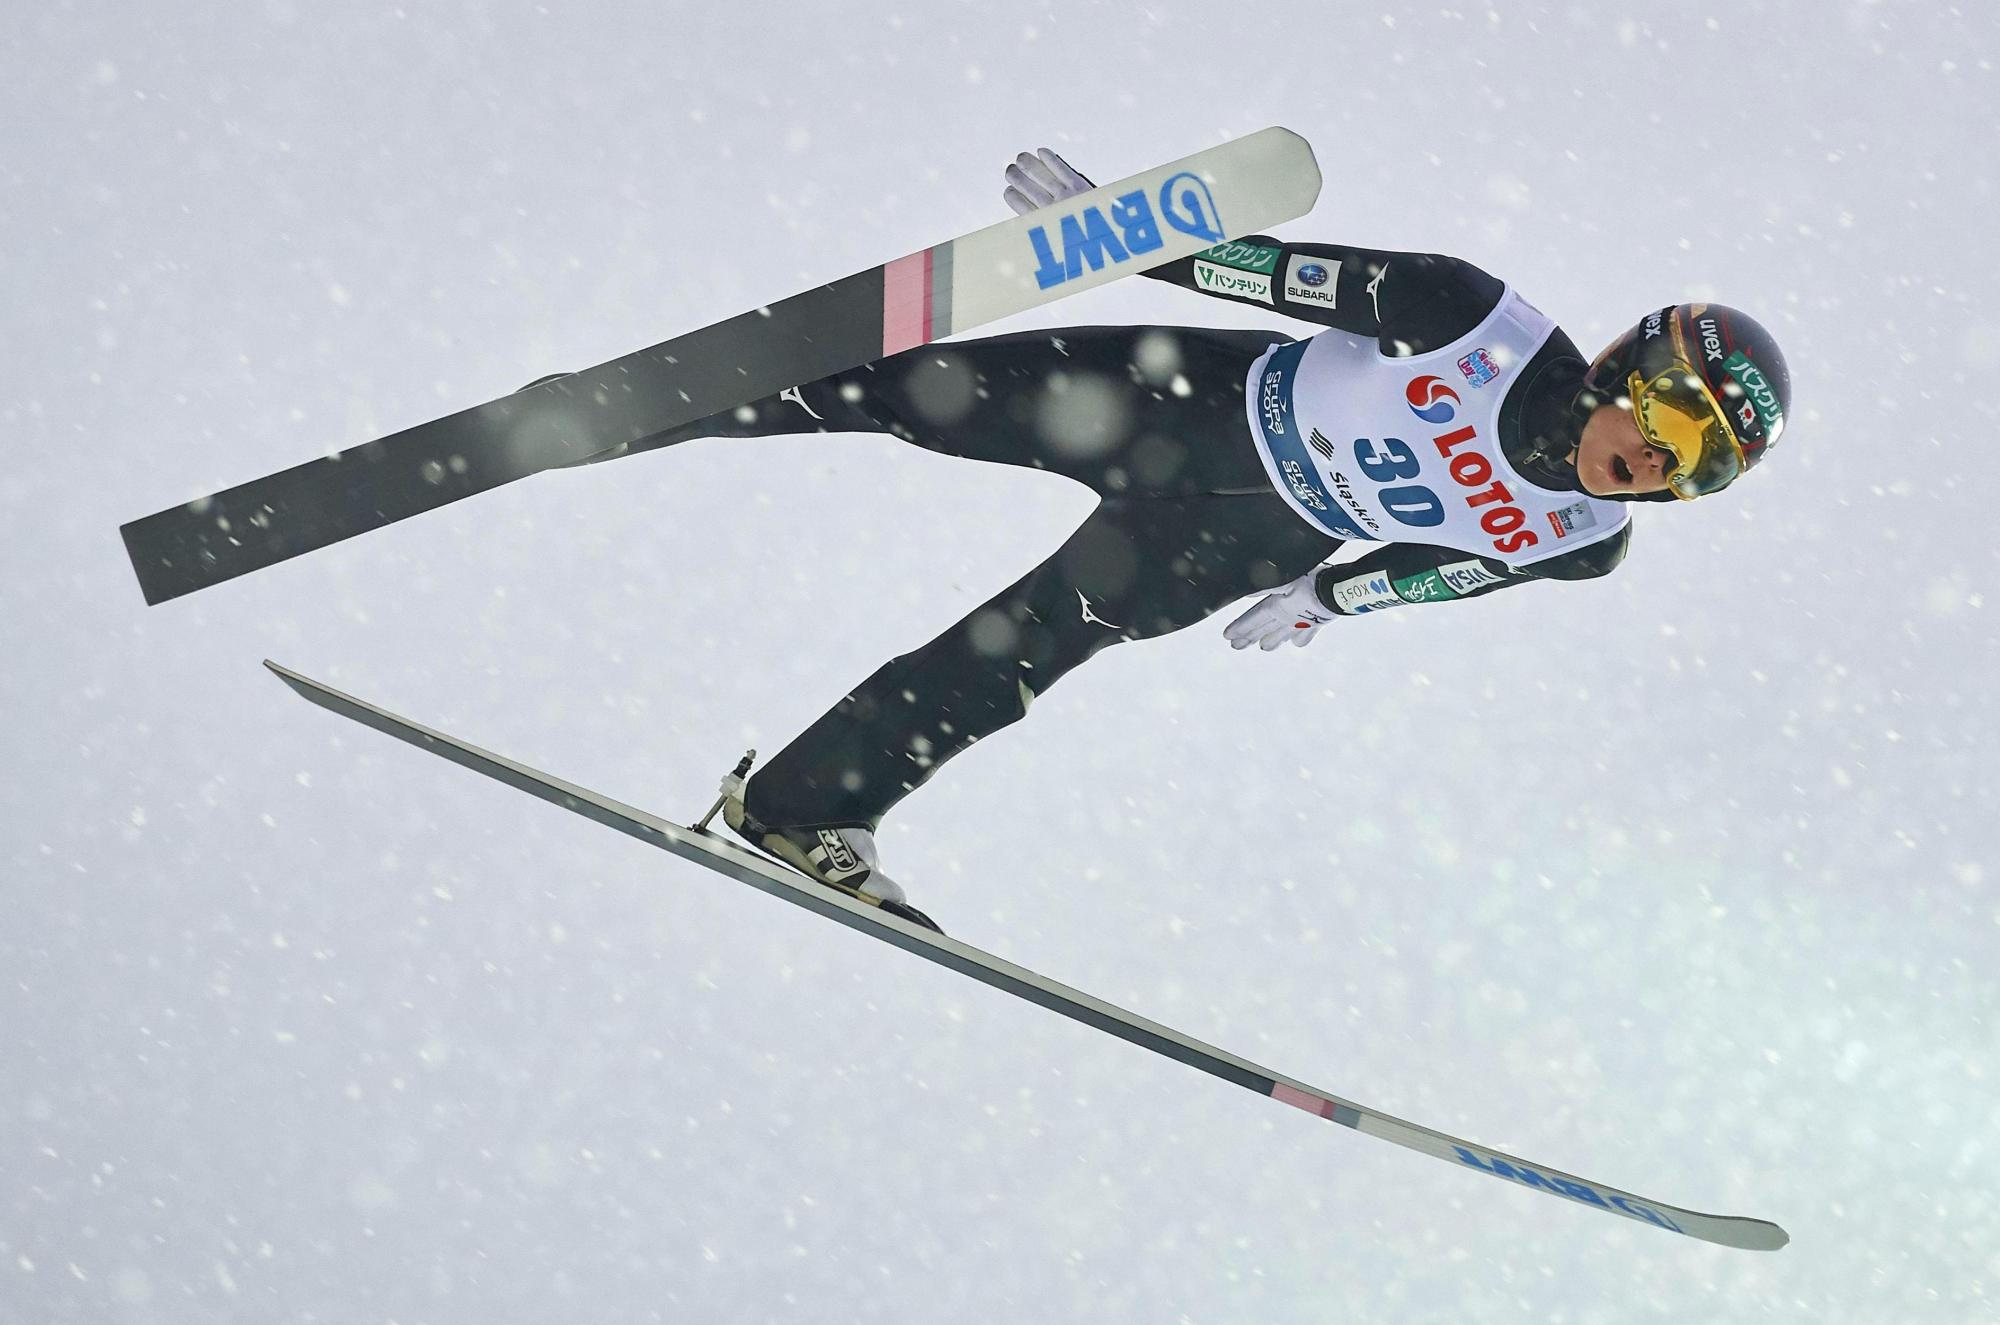 Ryoyu Kobayashi competes during a ski jumping World Cup event on Sunday in Wisla, Poland. Kobayashi placed third to record his first-ever podium finish. | KYODO